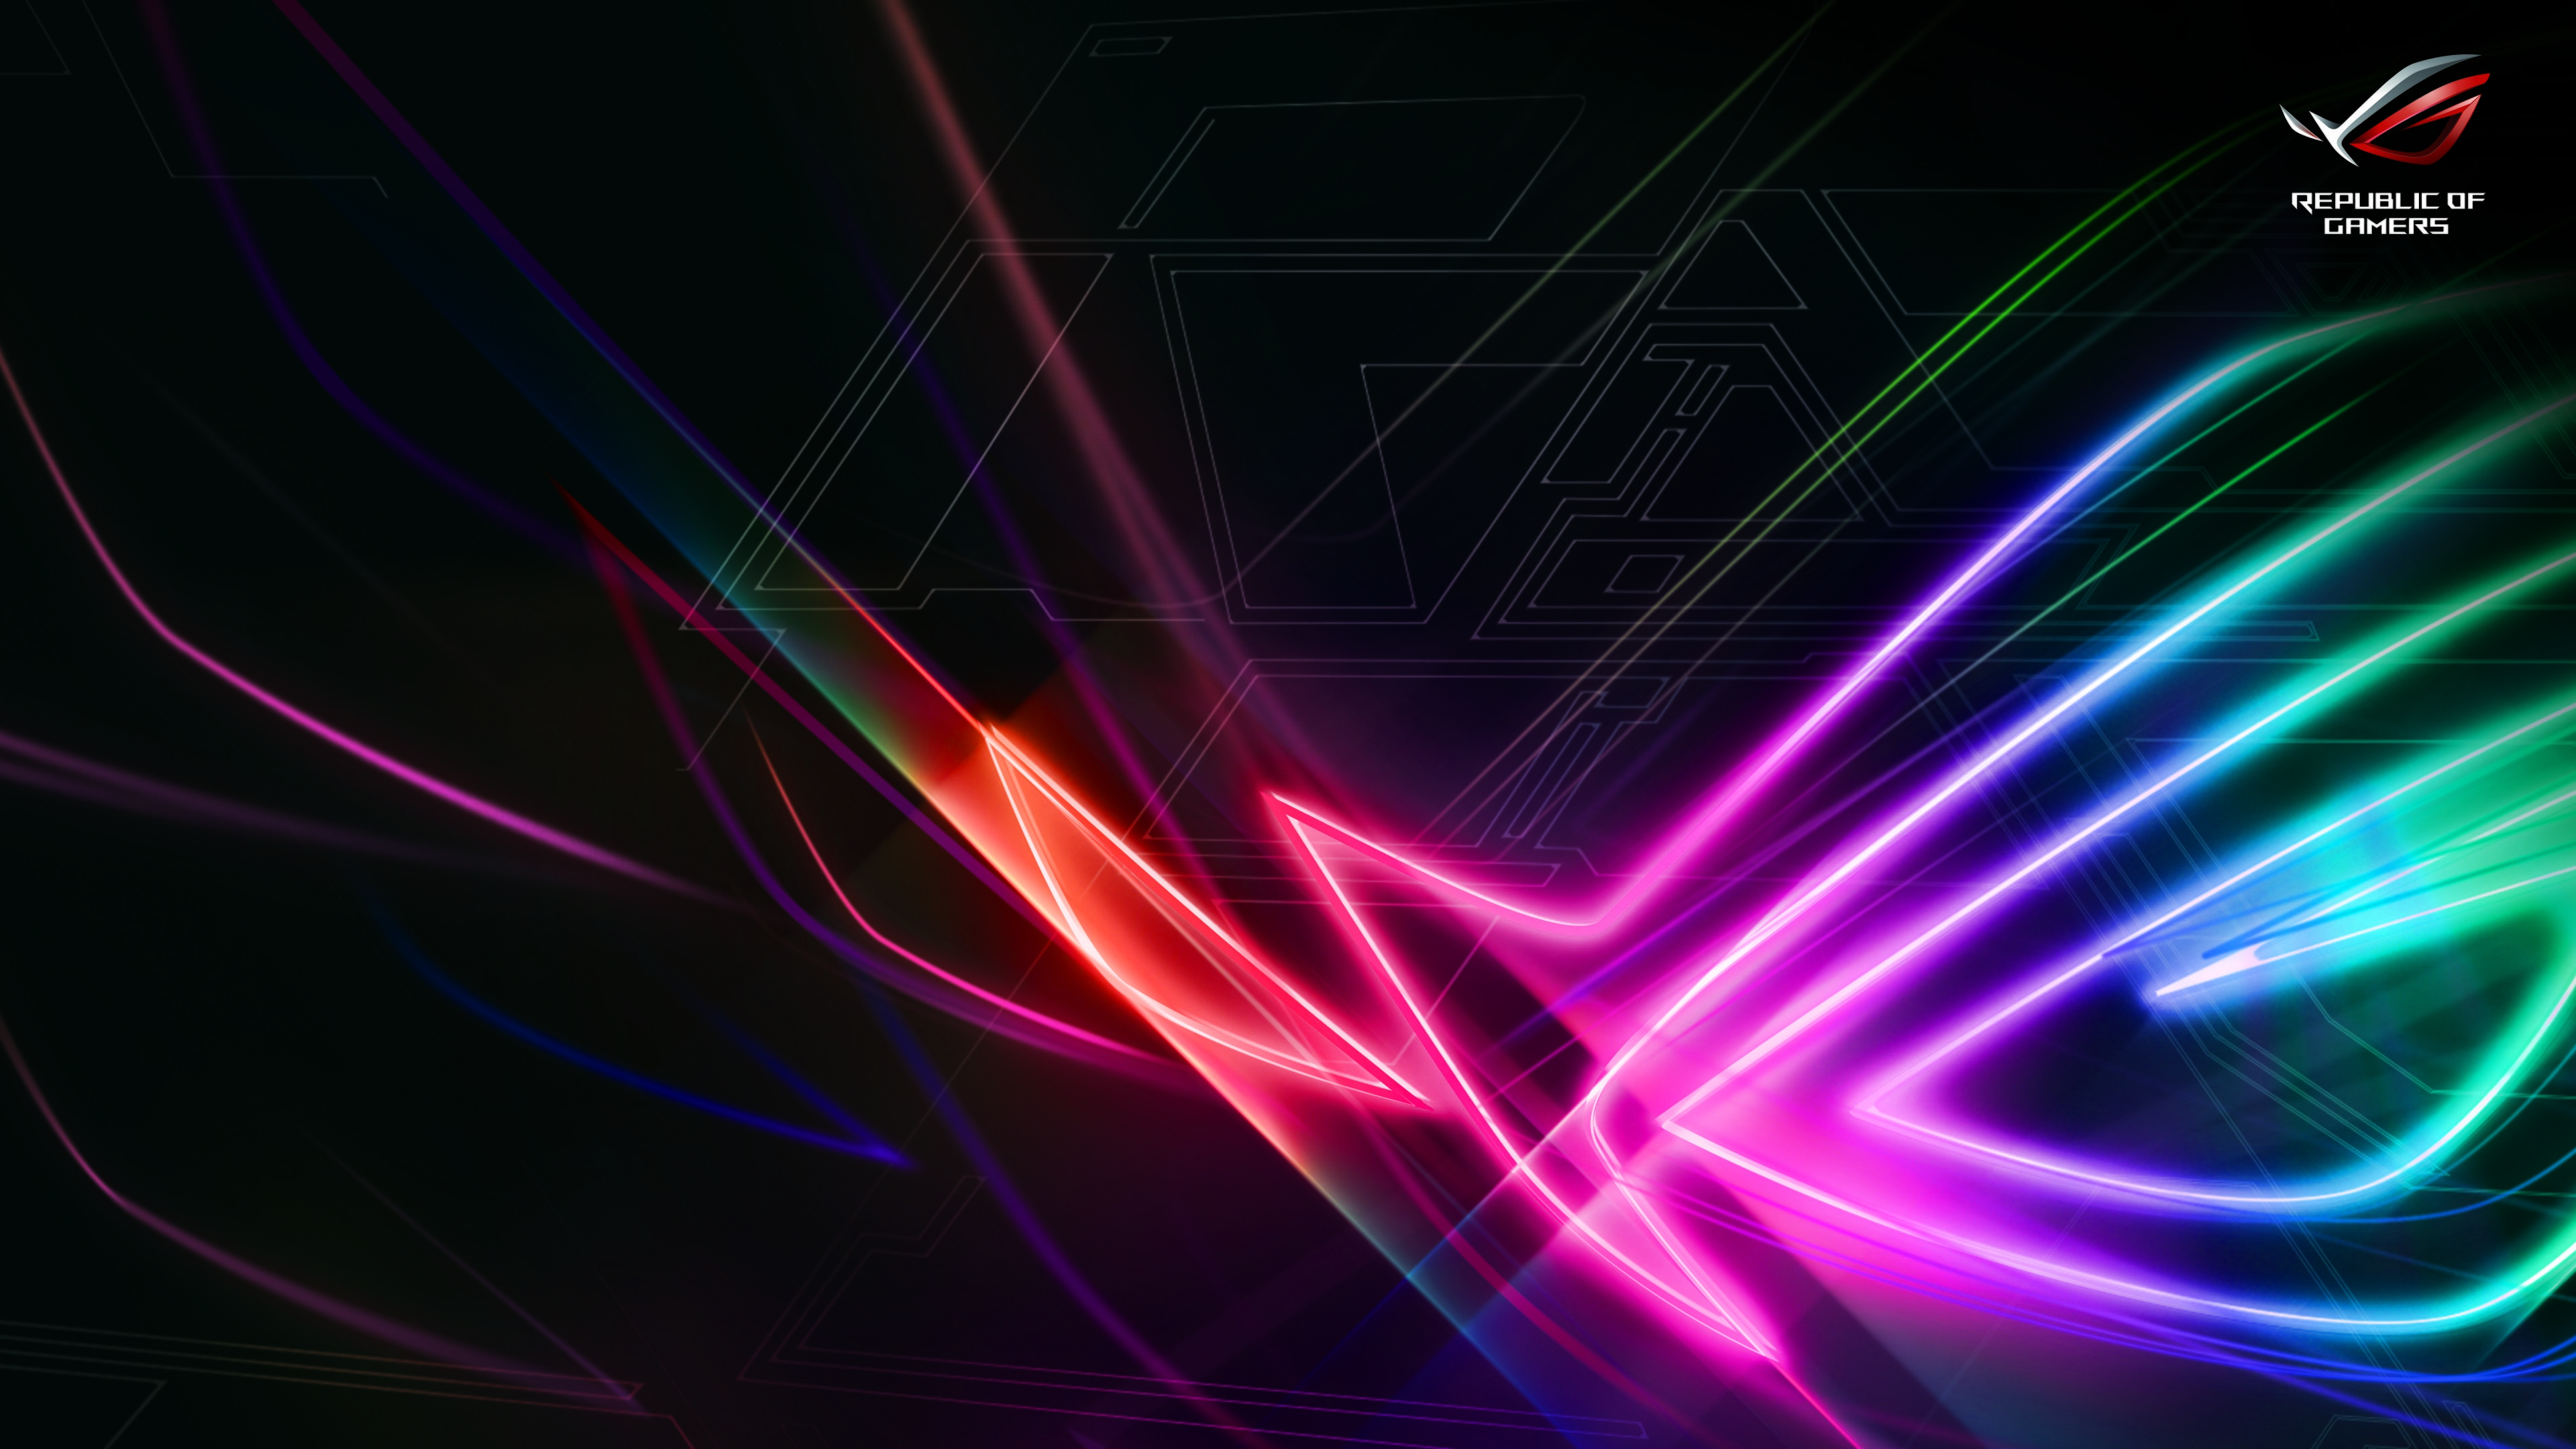 Asus Rog Strix Wallpapers Top Free Asus Rog Strix Backgrounds